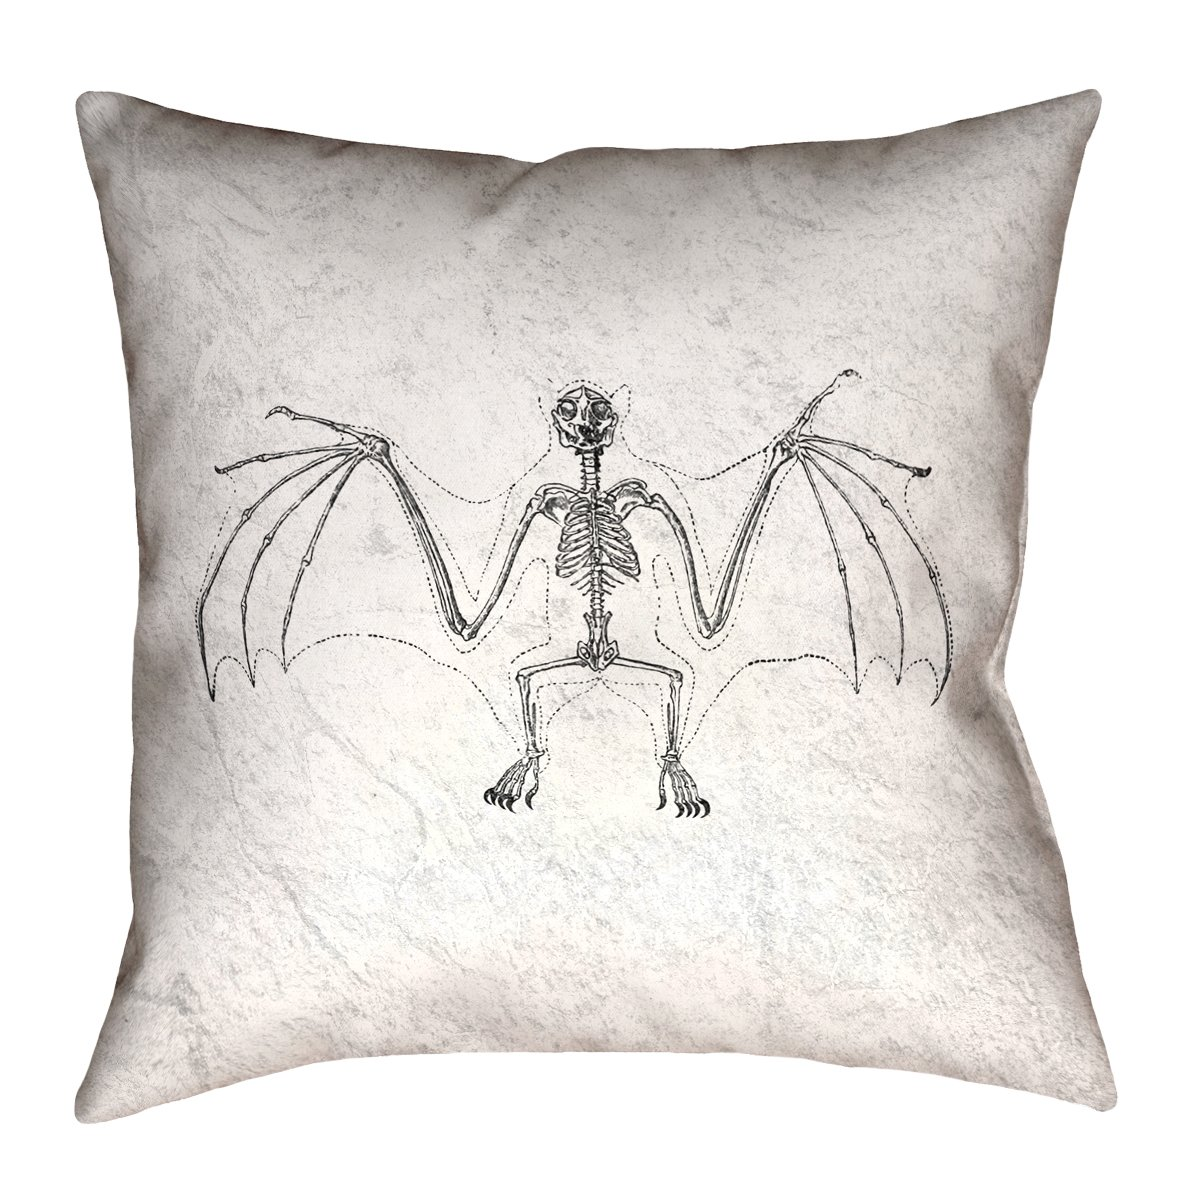 ArtVerse Katelyn Smith 28' x 28' Floor Double Sided Print with Concealed Zipper & Insert Vintage Bat Skeleton Pillow SMI141F2828L